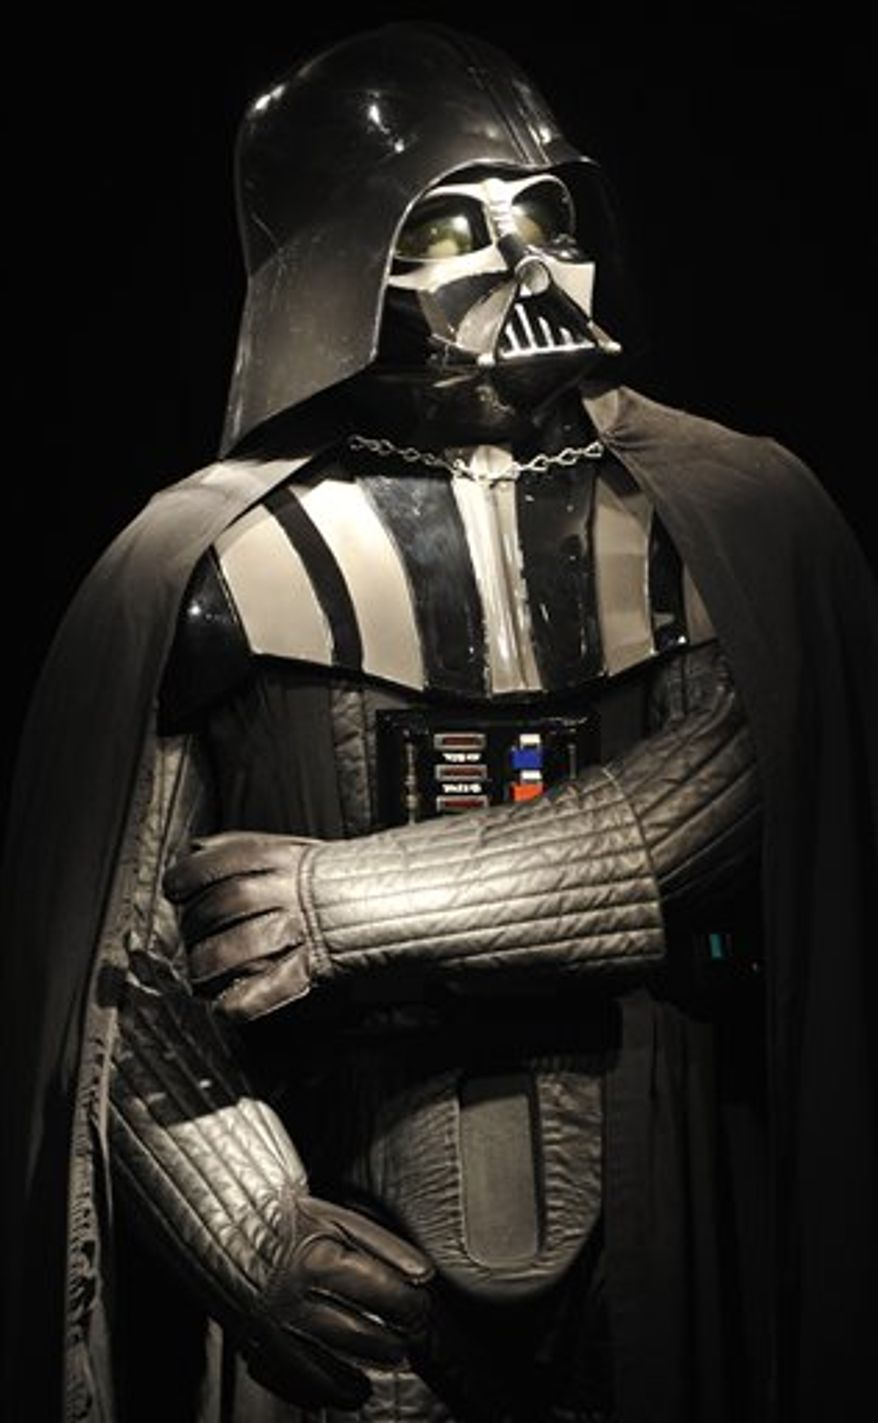 FILE -- An Oct. 27, 2010 file photo shows a Darth Vader costume at Christie's in London.  Christie's says the helmet, mask, shoulder armour and shin guards of the costume had been produced for the second Star Wars movie 'The Empire Strikes Back', released in 1980.  (AP Photo/Lennart Preiss/file)